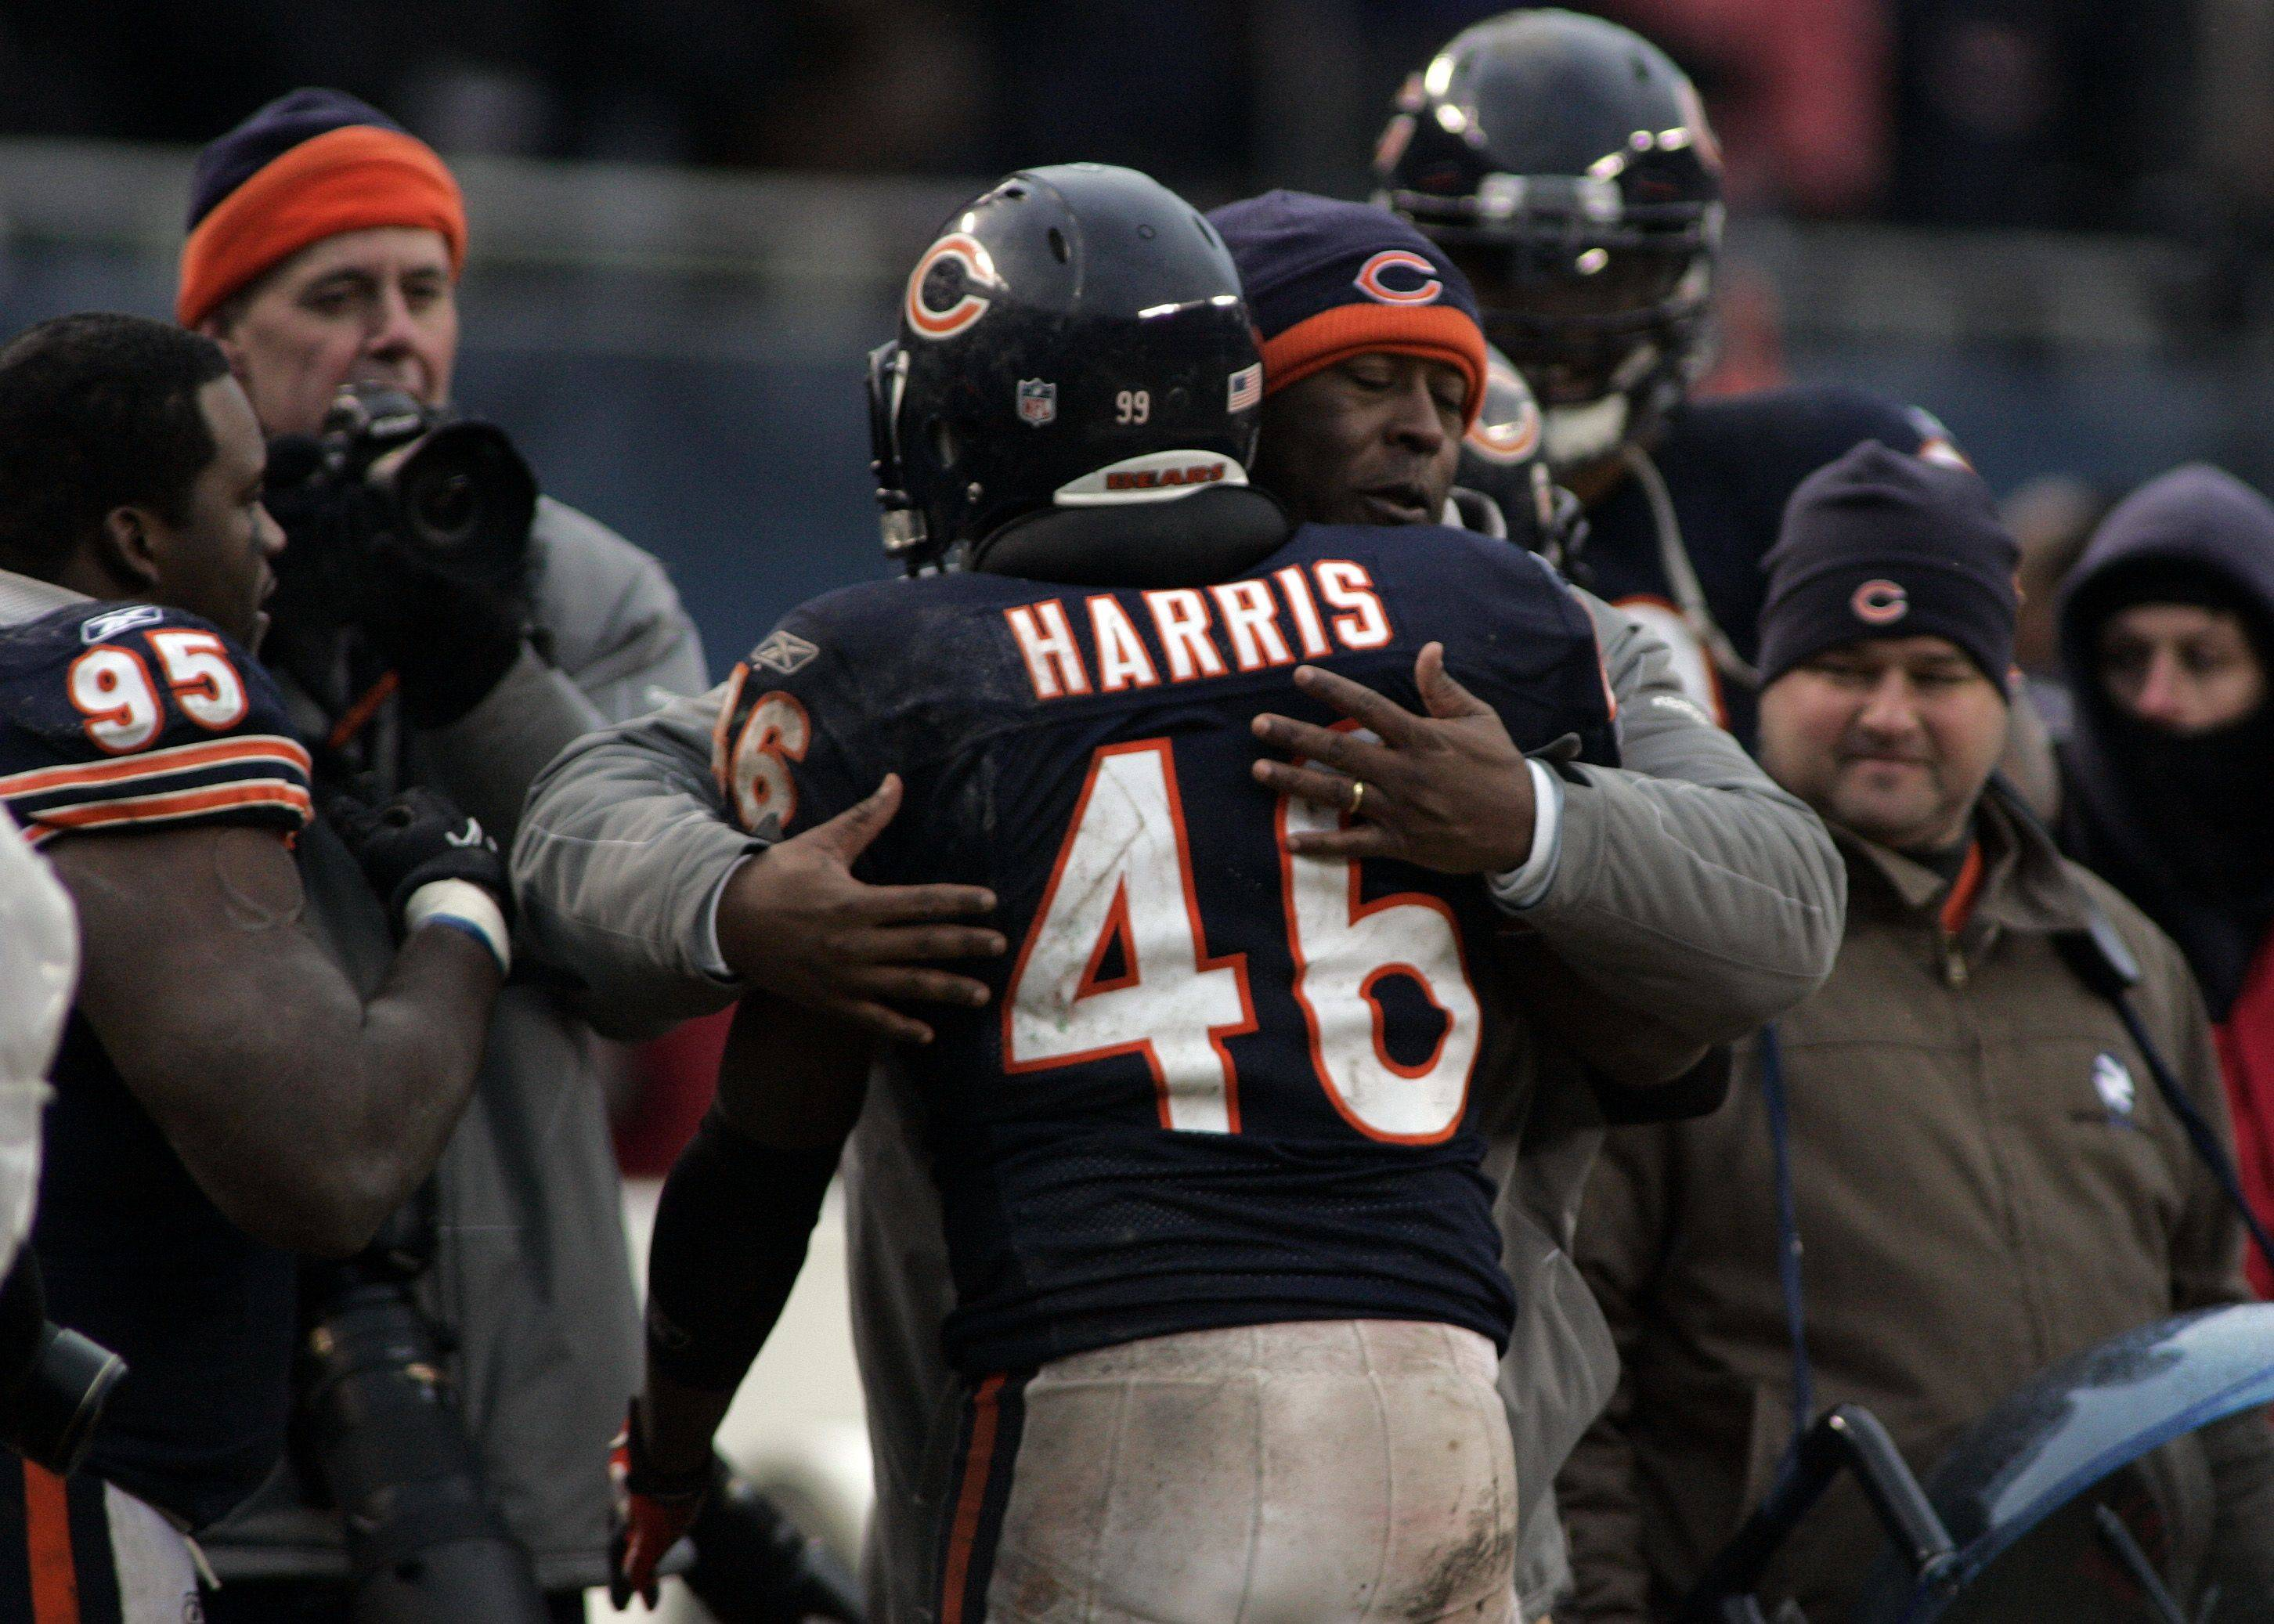 Bears coach Lovie Smith hugs safety Chris Harris (46) after he pulled in an interception to clinch Sunday's victory over the Jets at Soldier Field.